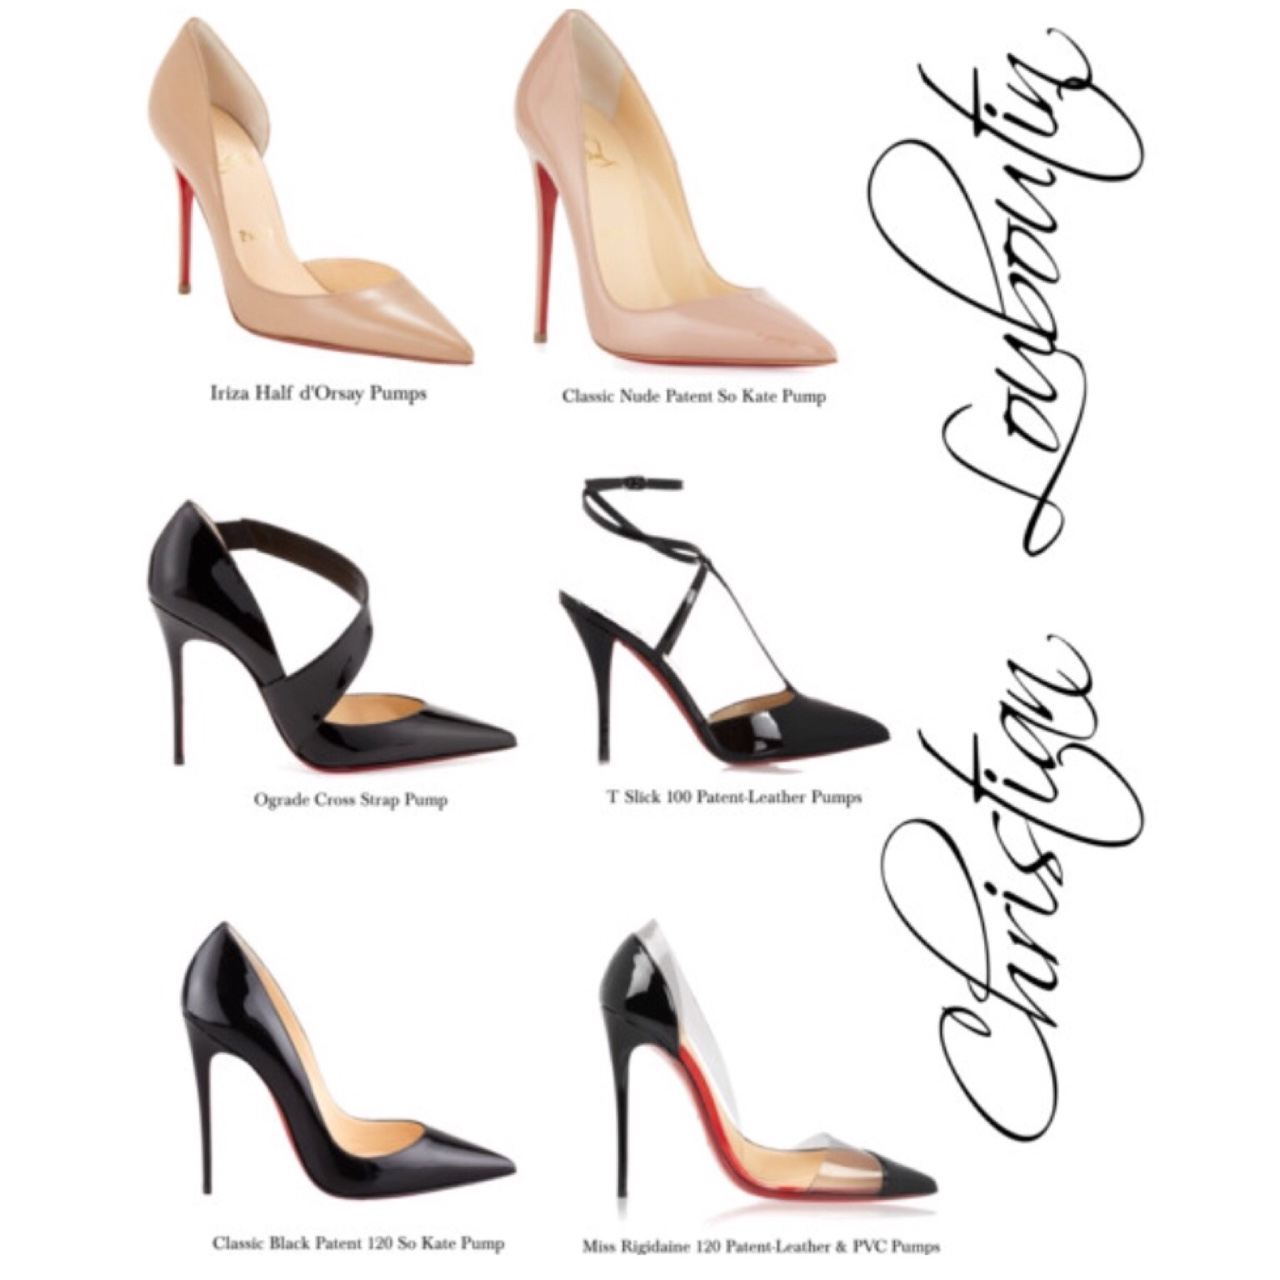 My Favourites Six of my Favourite Christian Louboutin styles. Love the Classic Nude & Black So Kate Pumps and also the strap and PVC details for casual & evening looks. These are definitely wardrobe staples! //SHE